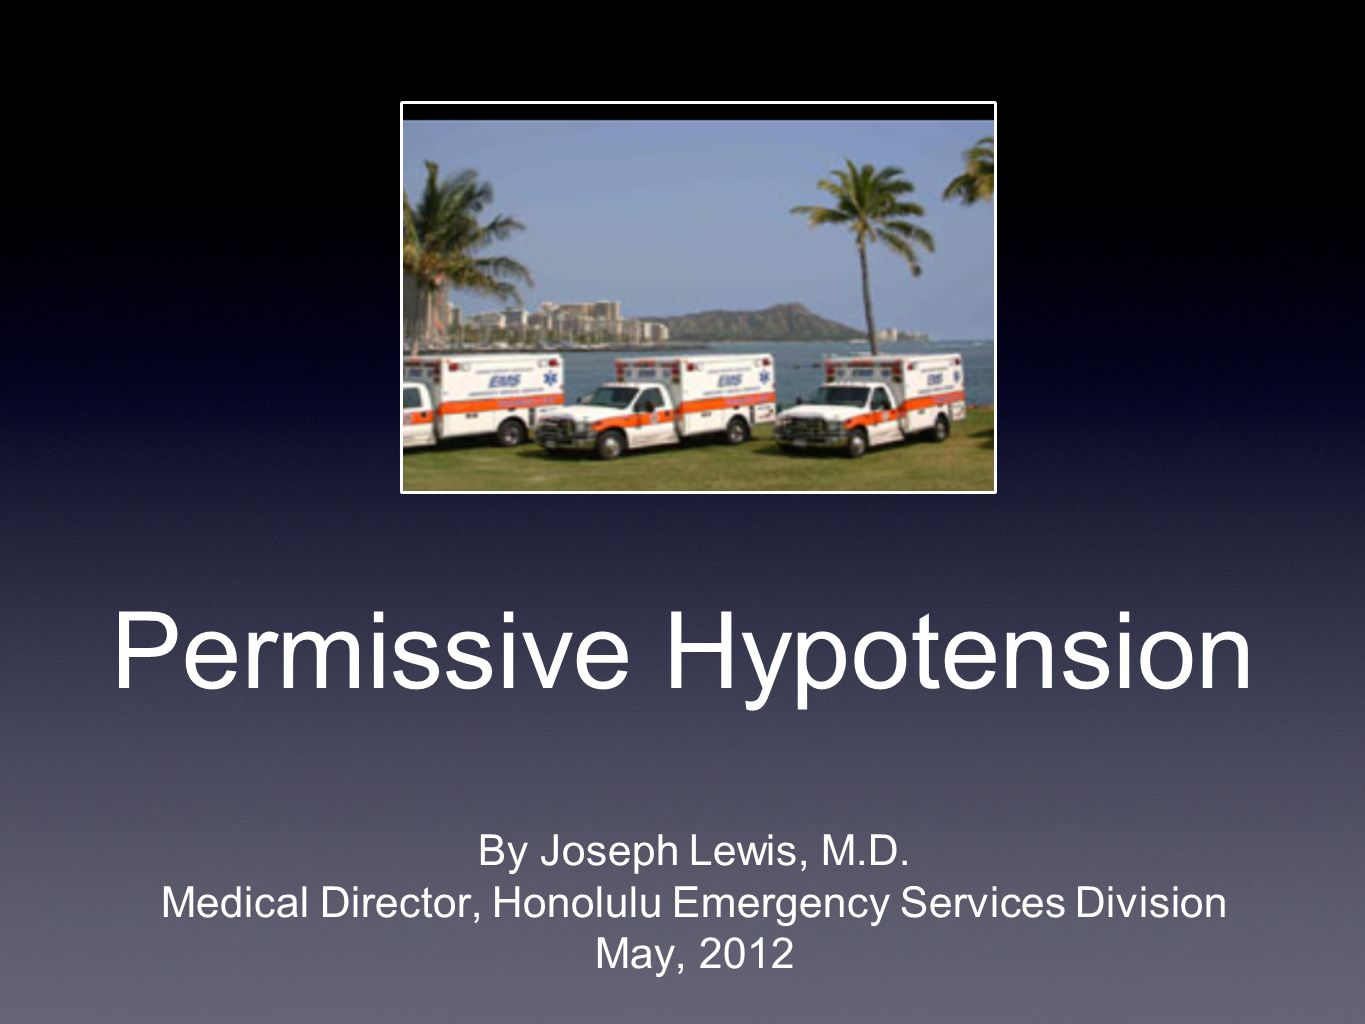 Permissive Hypotension By Joseph Lewis, M.D. Medical Director, Honolulu Emergency Services Division May, 2012